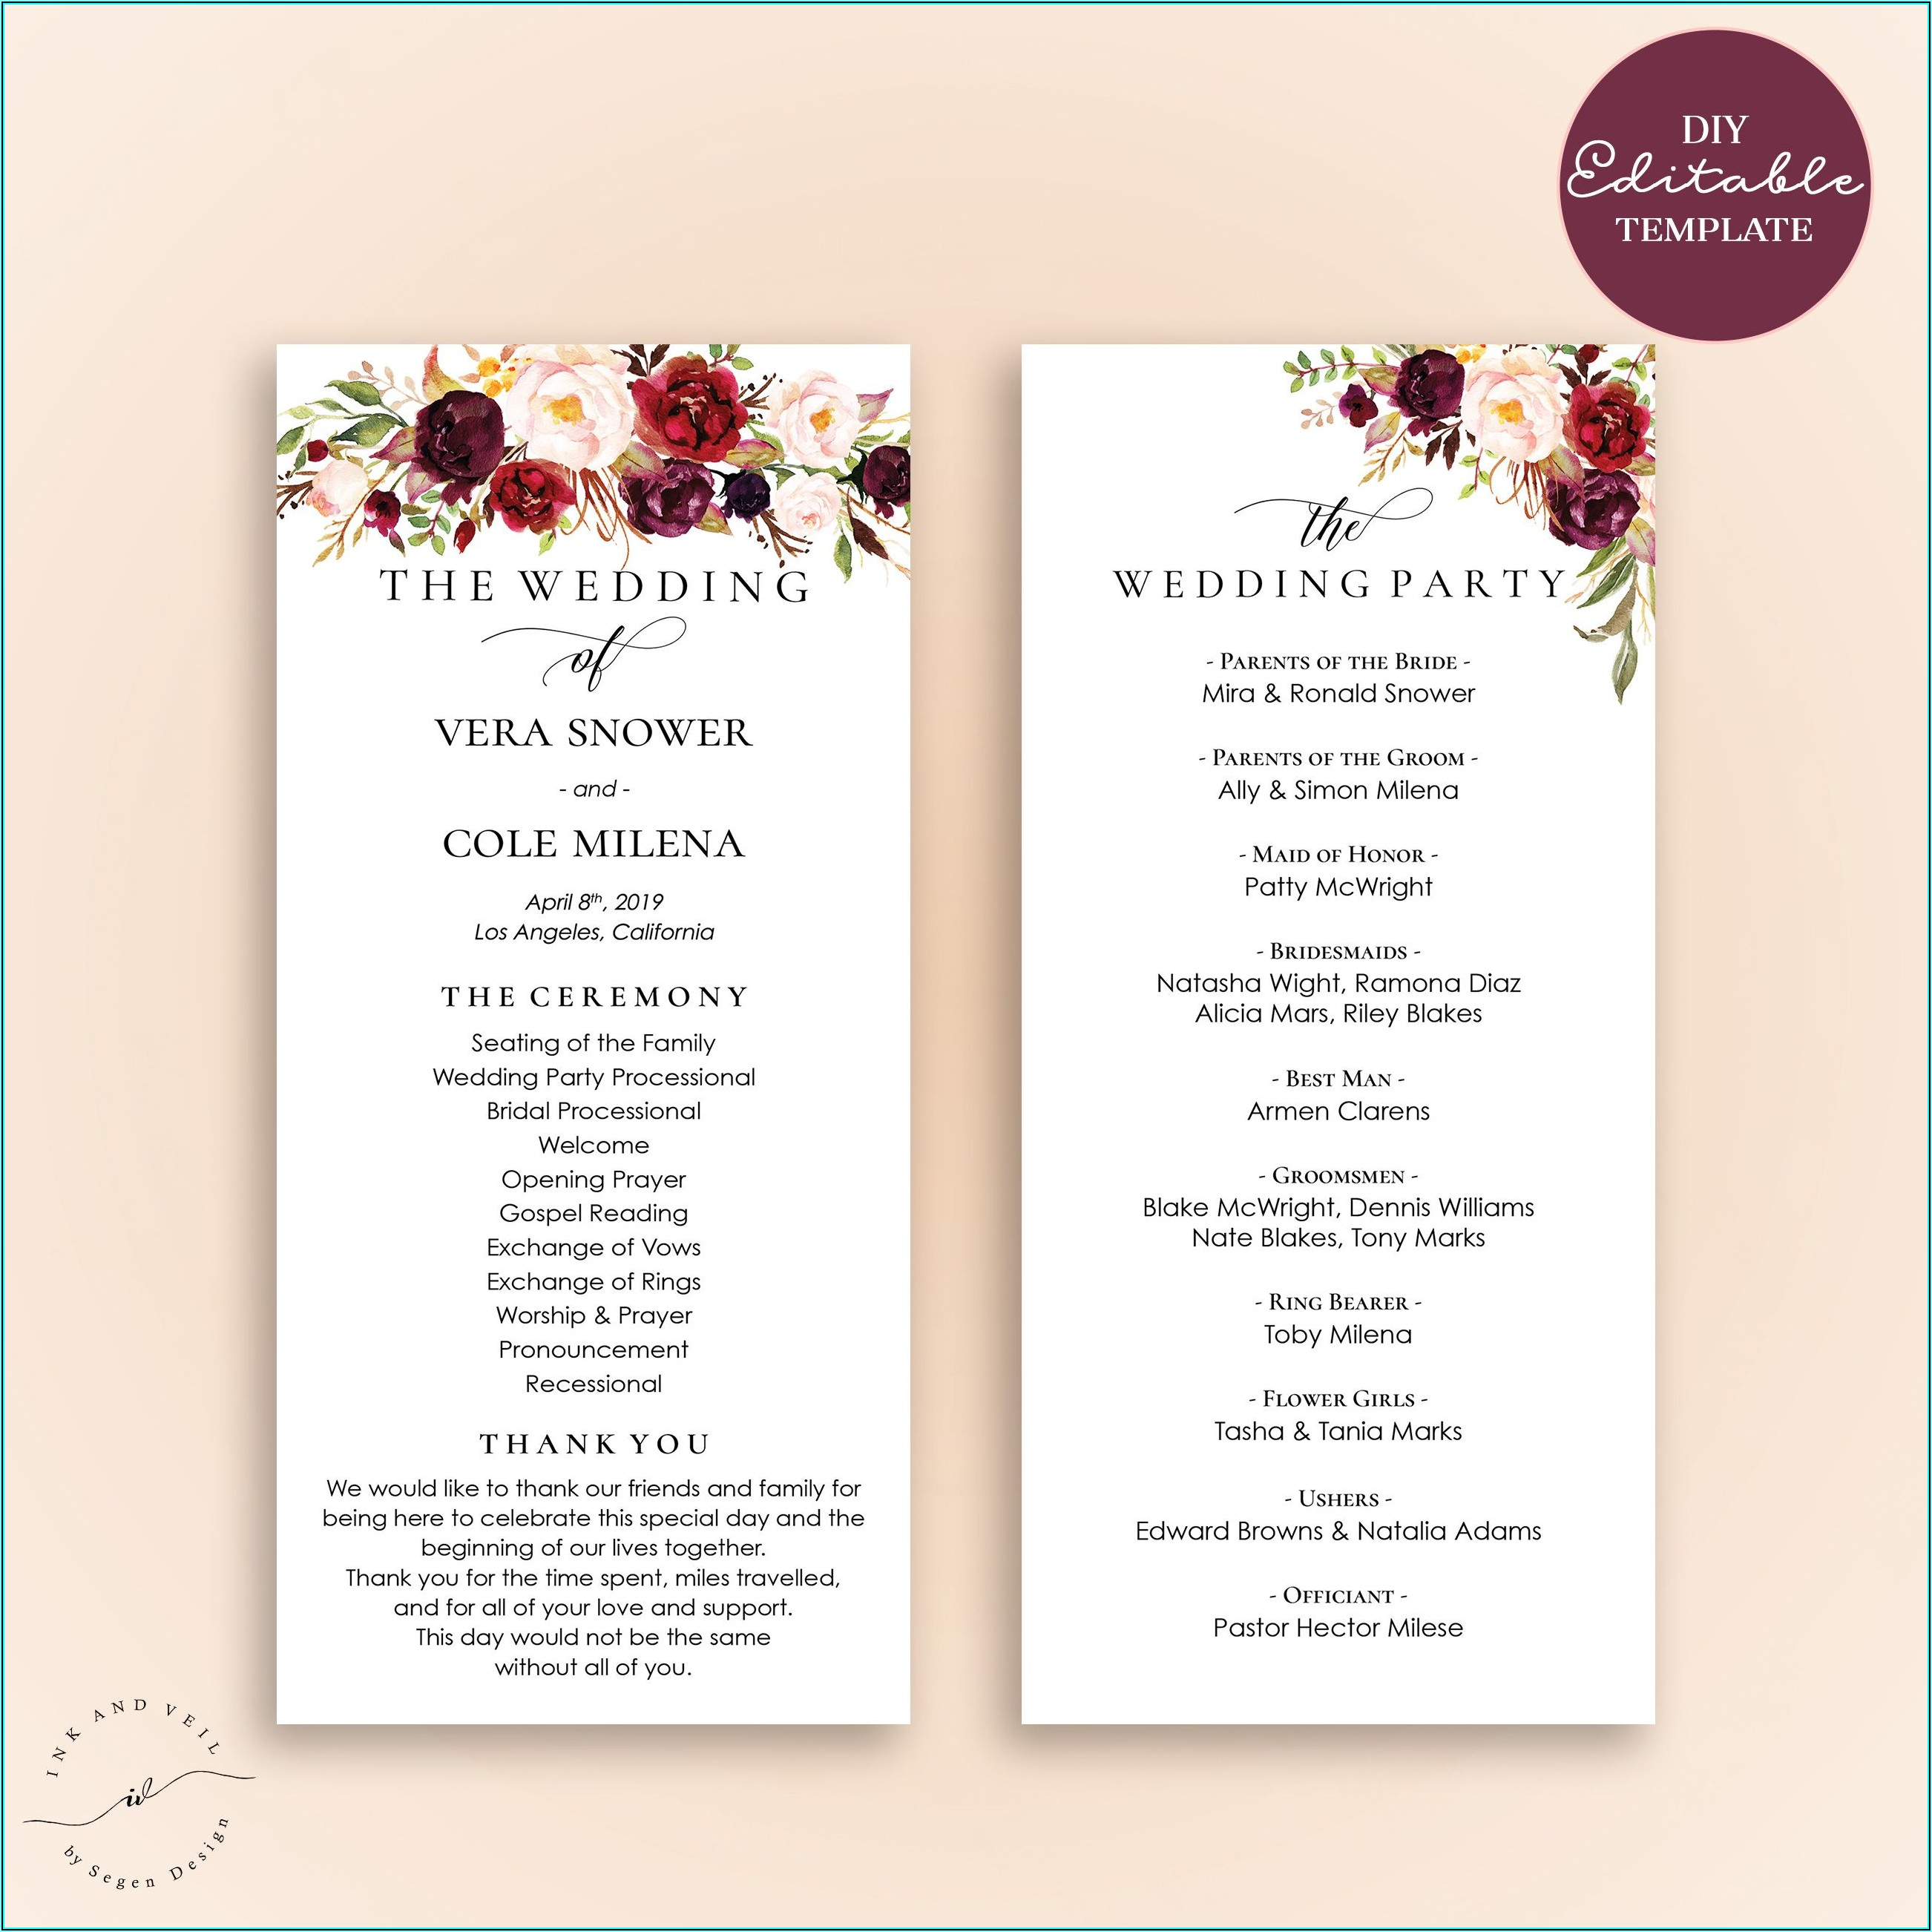 Free Downloadable Wedding Program Templates Pdf